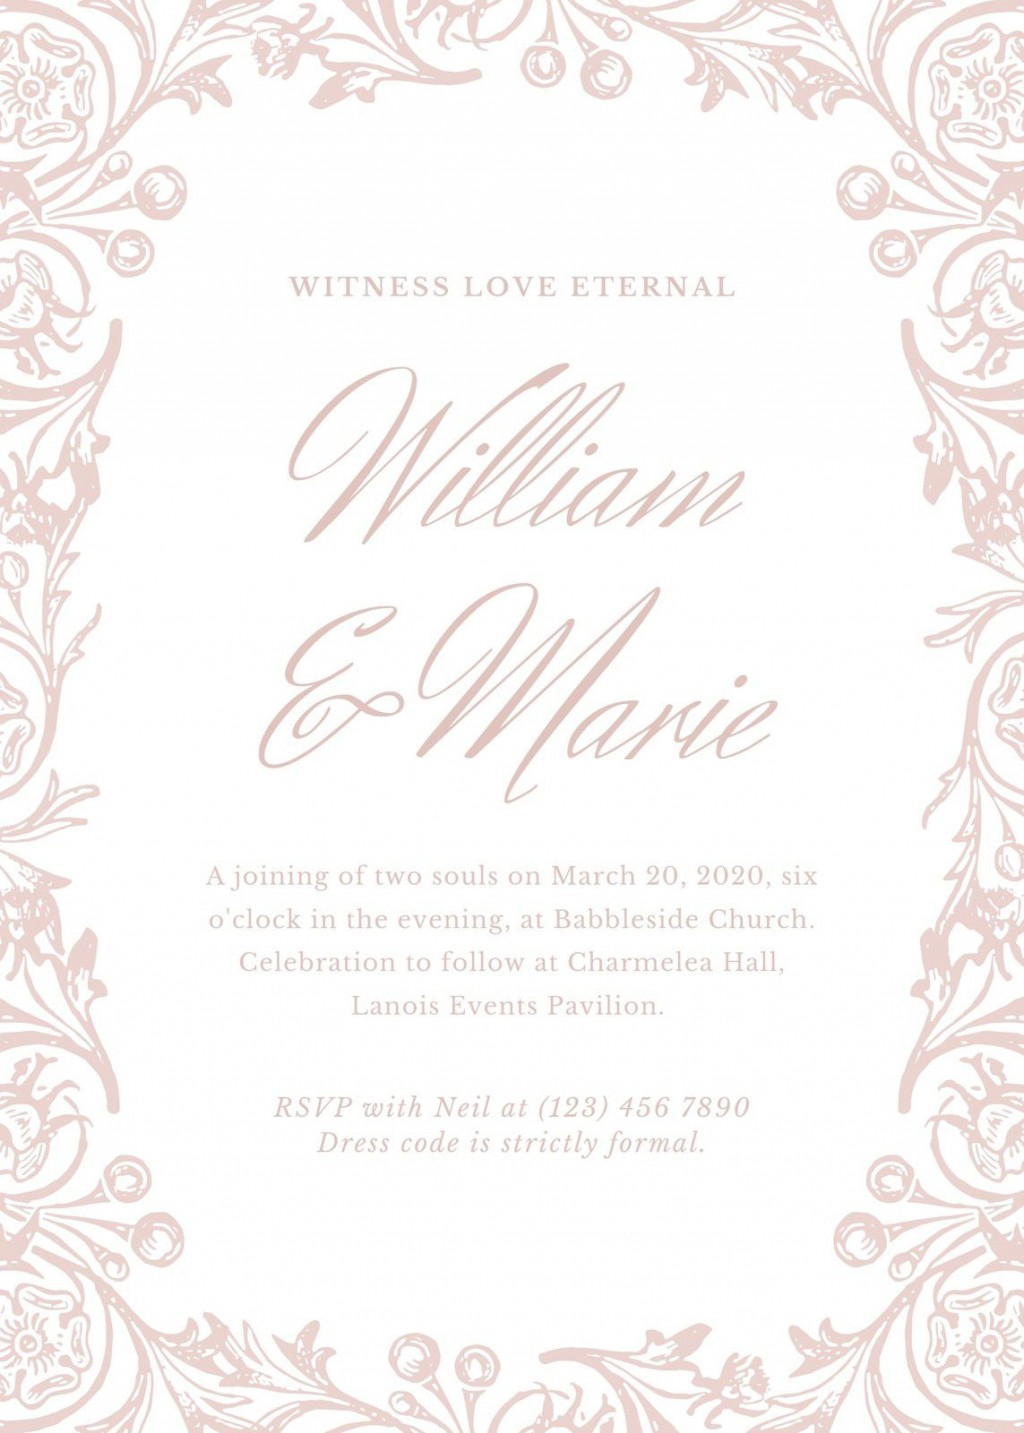 008 Beautiful Formal Wedding Invitation Template High Def  Templates Email Format Wording FreeLarge